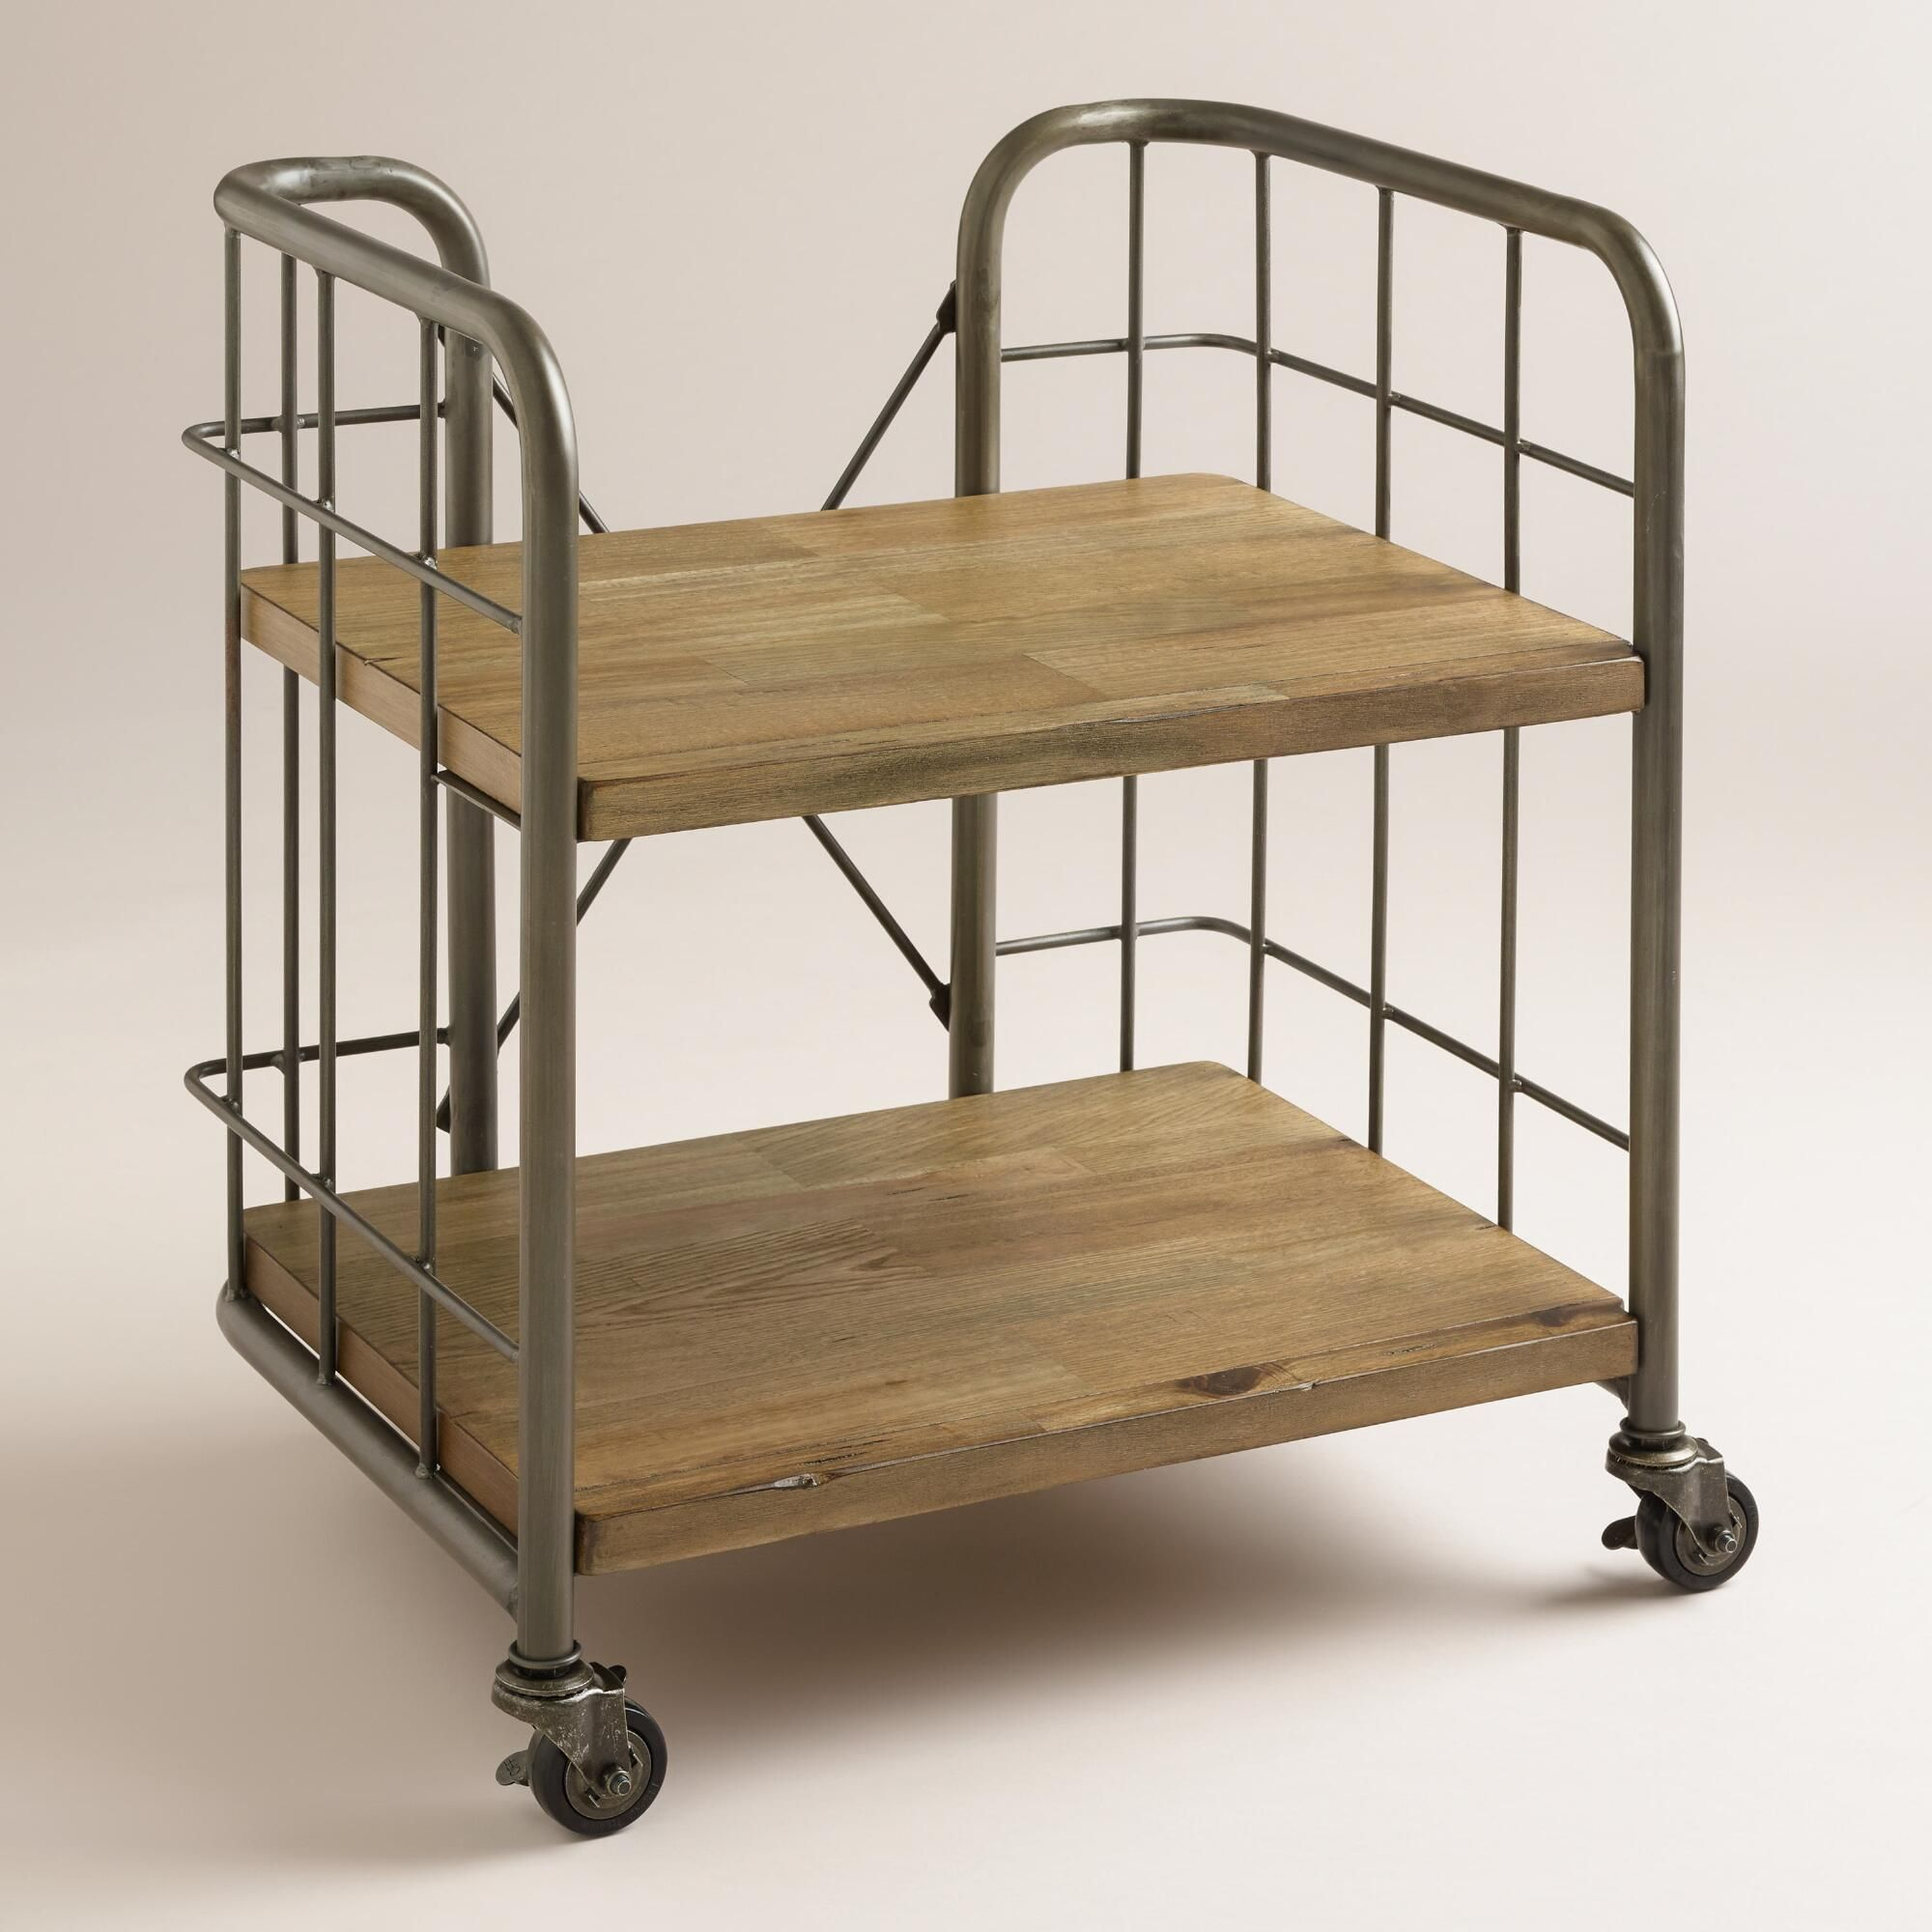 Wood And Metal Industrial Kitchen Cart: Our Compact Small Caiden Cart Combines Distressed Wood And